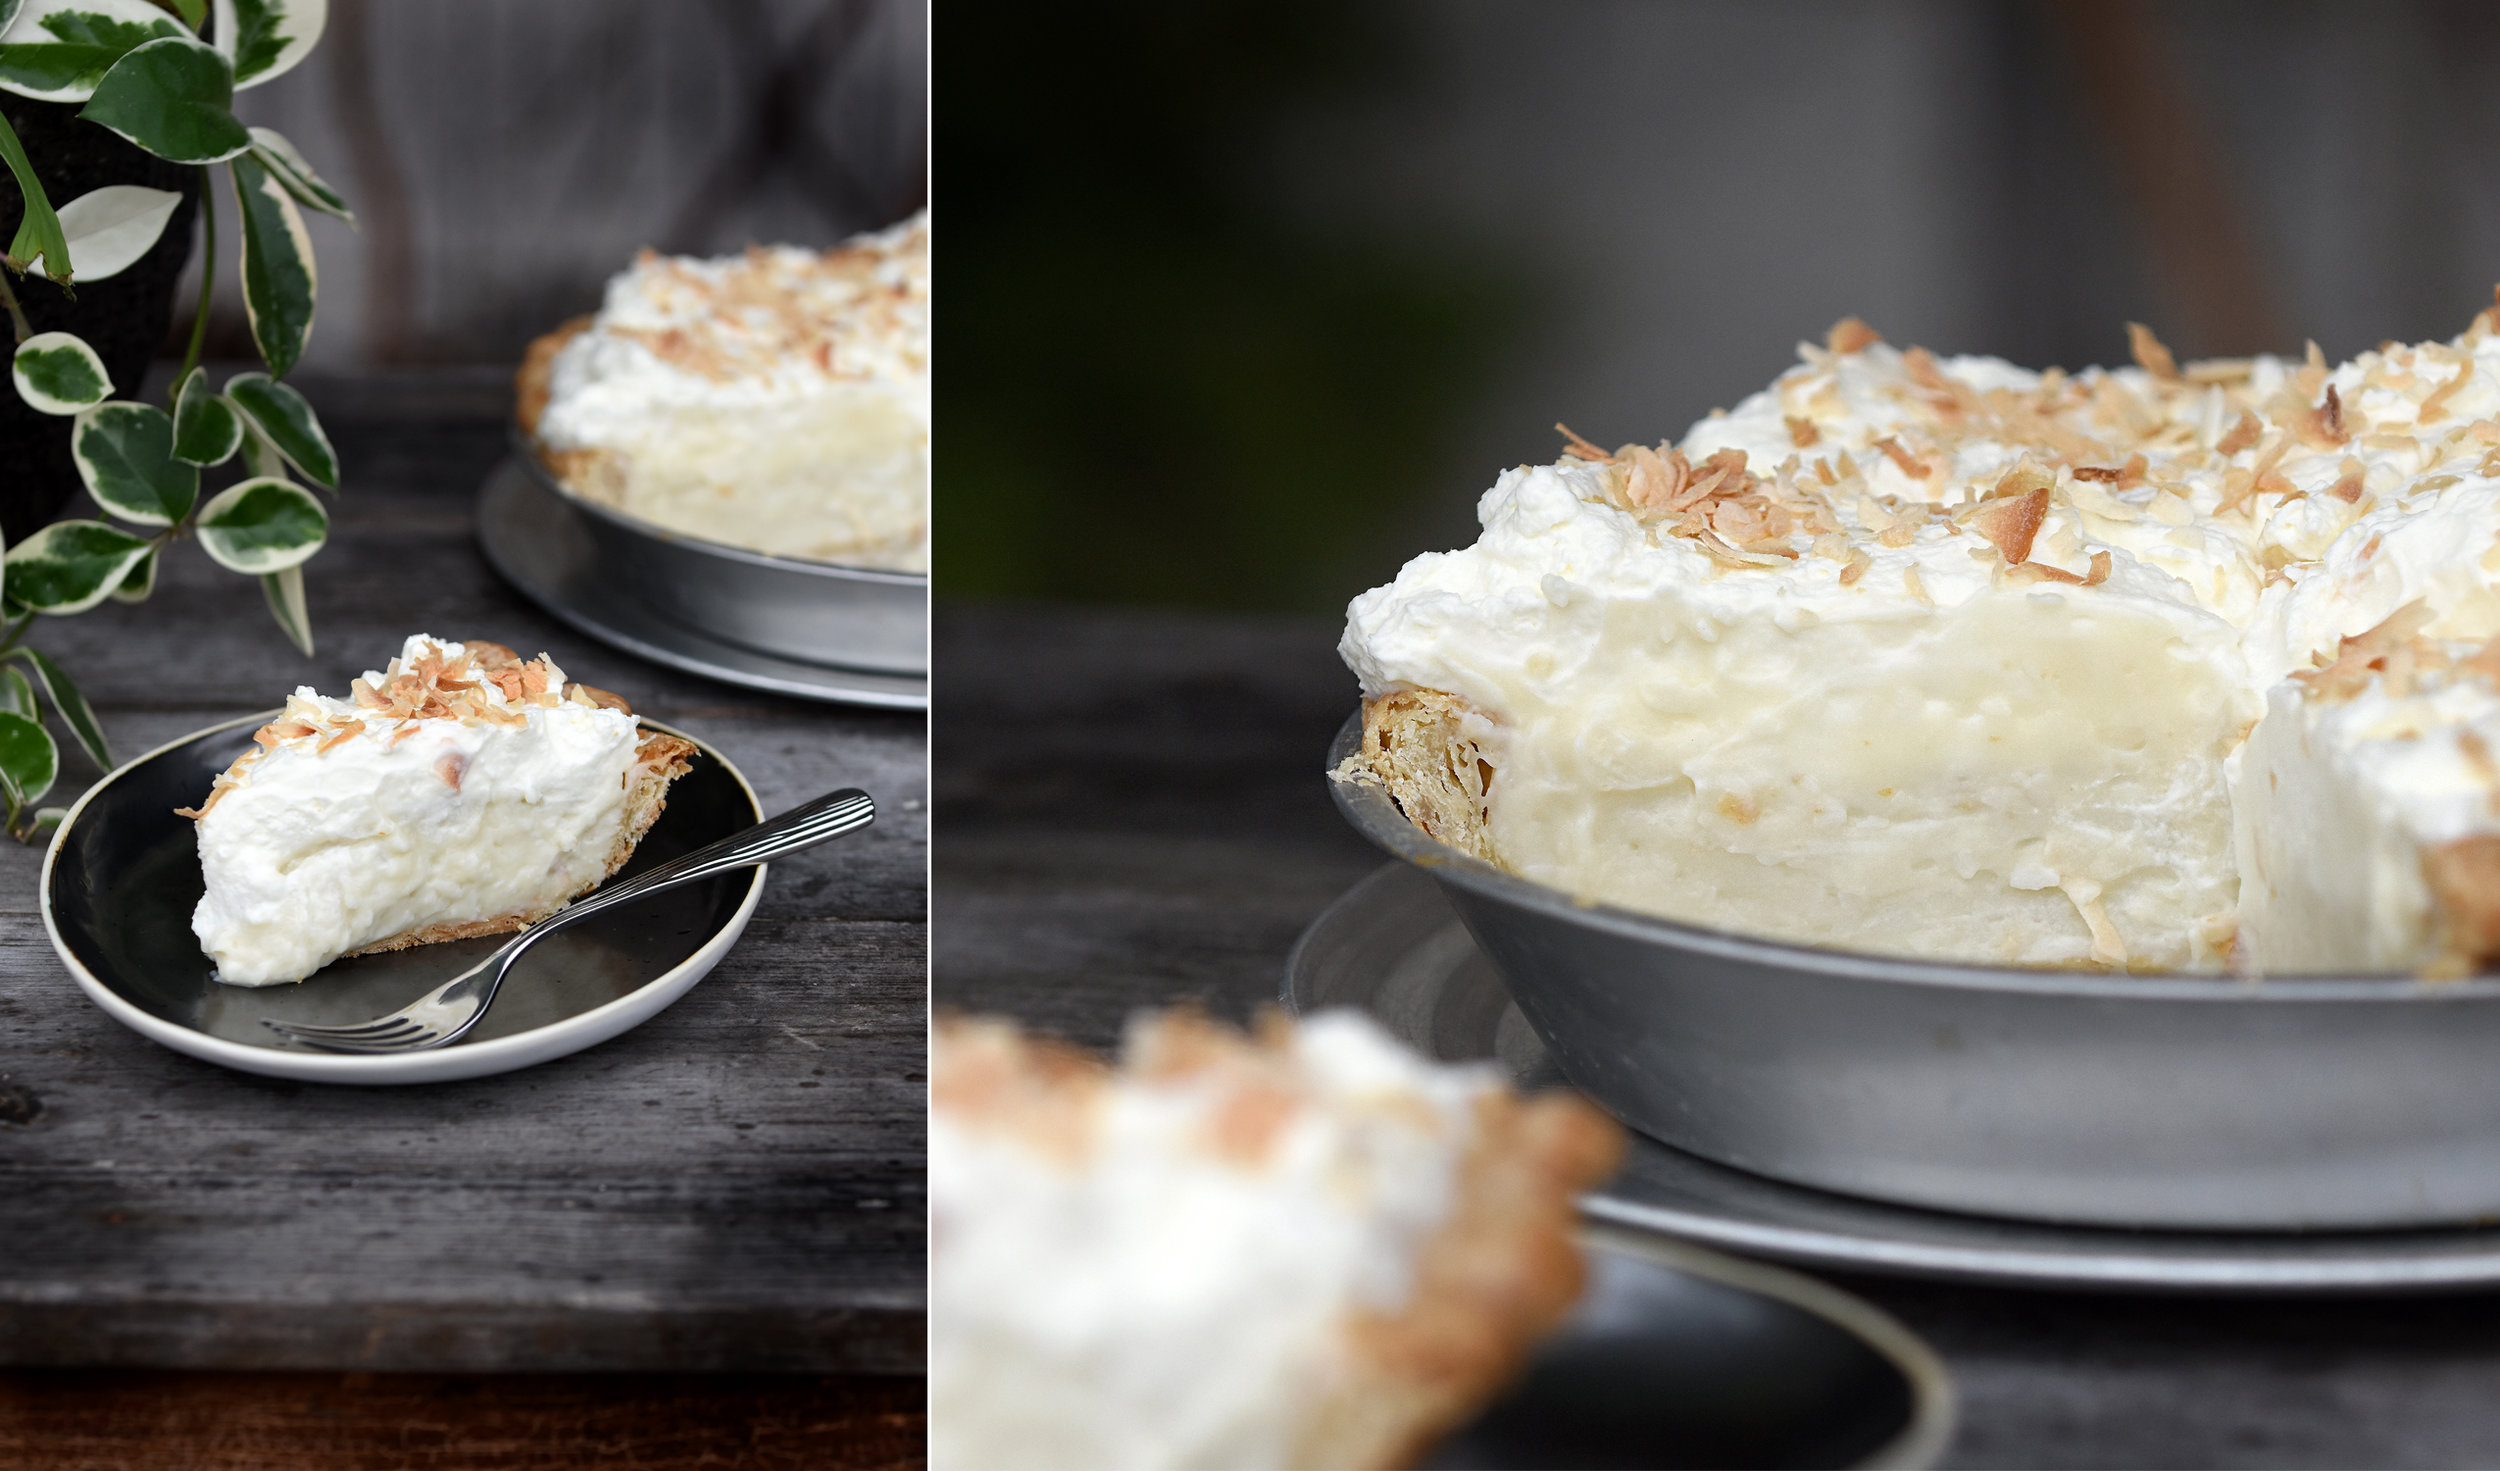 Coconut Cream Pie   5.25 per slice / 38 whole  Another staff favorite! The filling is so thick and satisfying! Full of flavor and texture. You must try this pie if you like coconut! Piled high with our amazing whipped cream from Homeland Creamery.